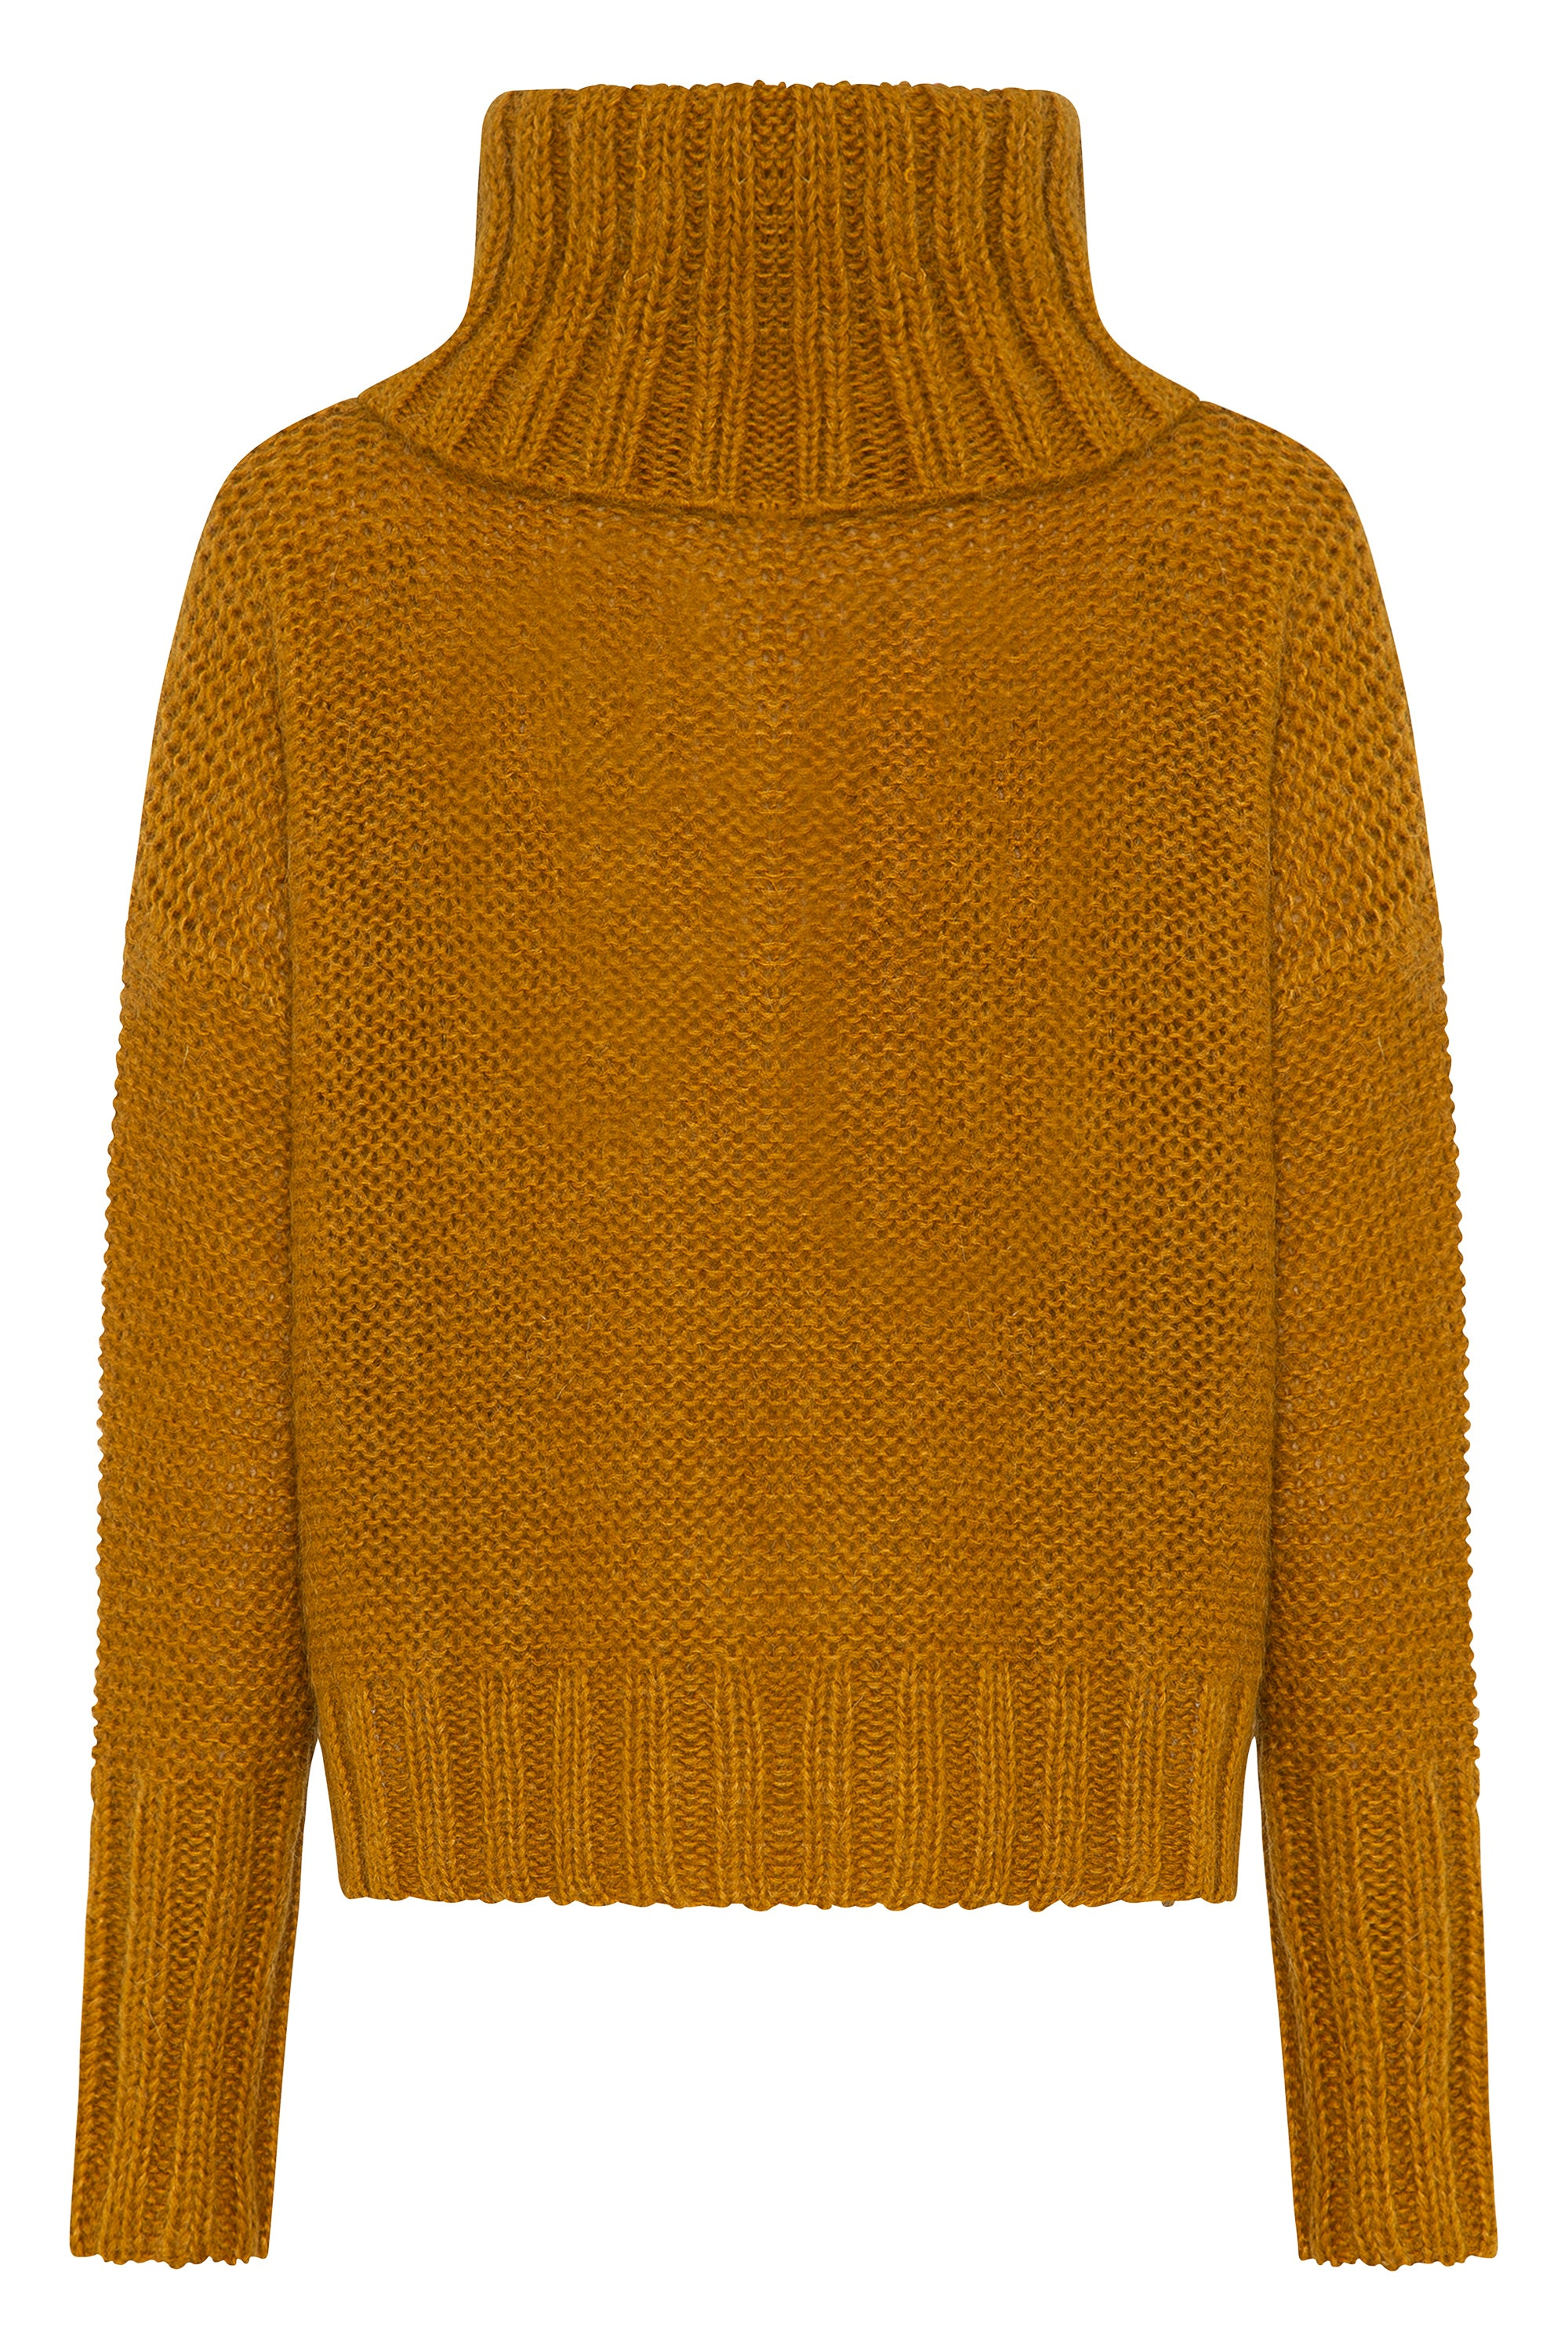 Wilde Jumper In Mustard